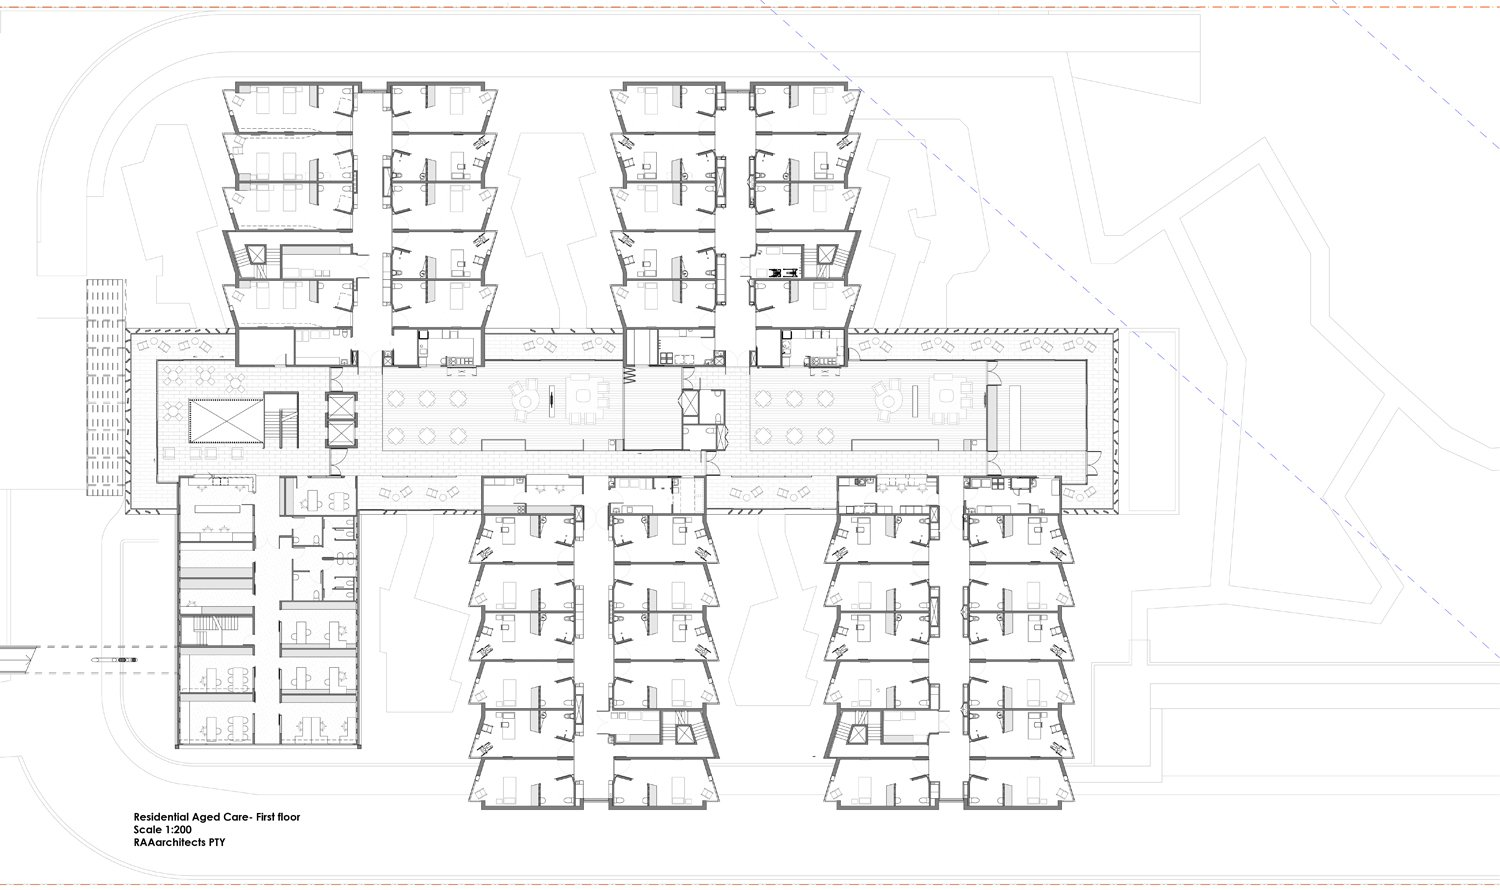 Residential Aged Care - first floor plan RAAarchitects}